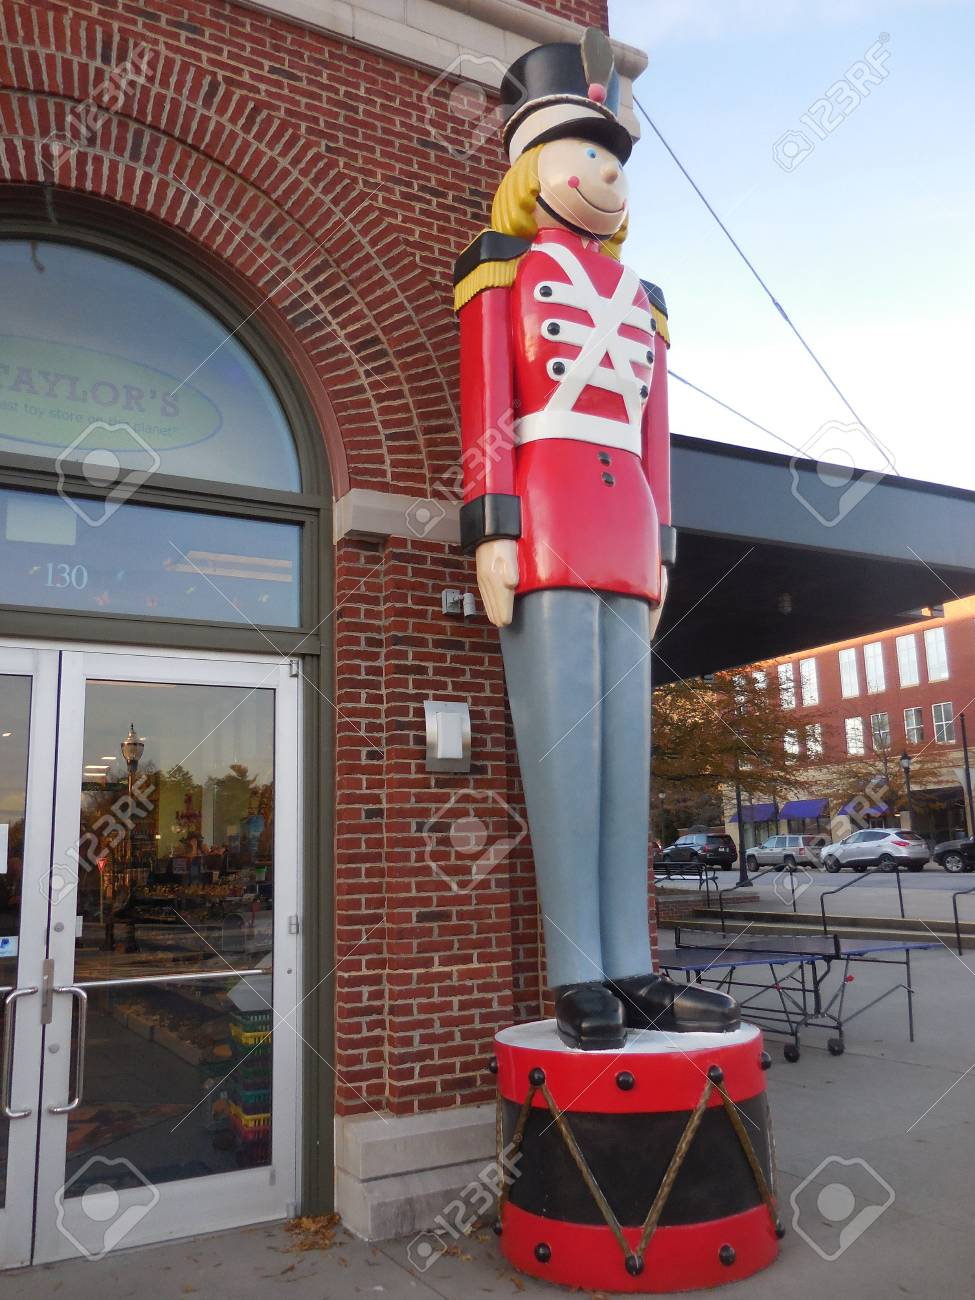 December 16, 2016 - Asheville, NC - Soldier at a toy store entrance Stock Photo - 78727534